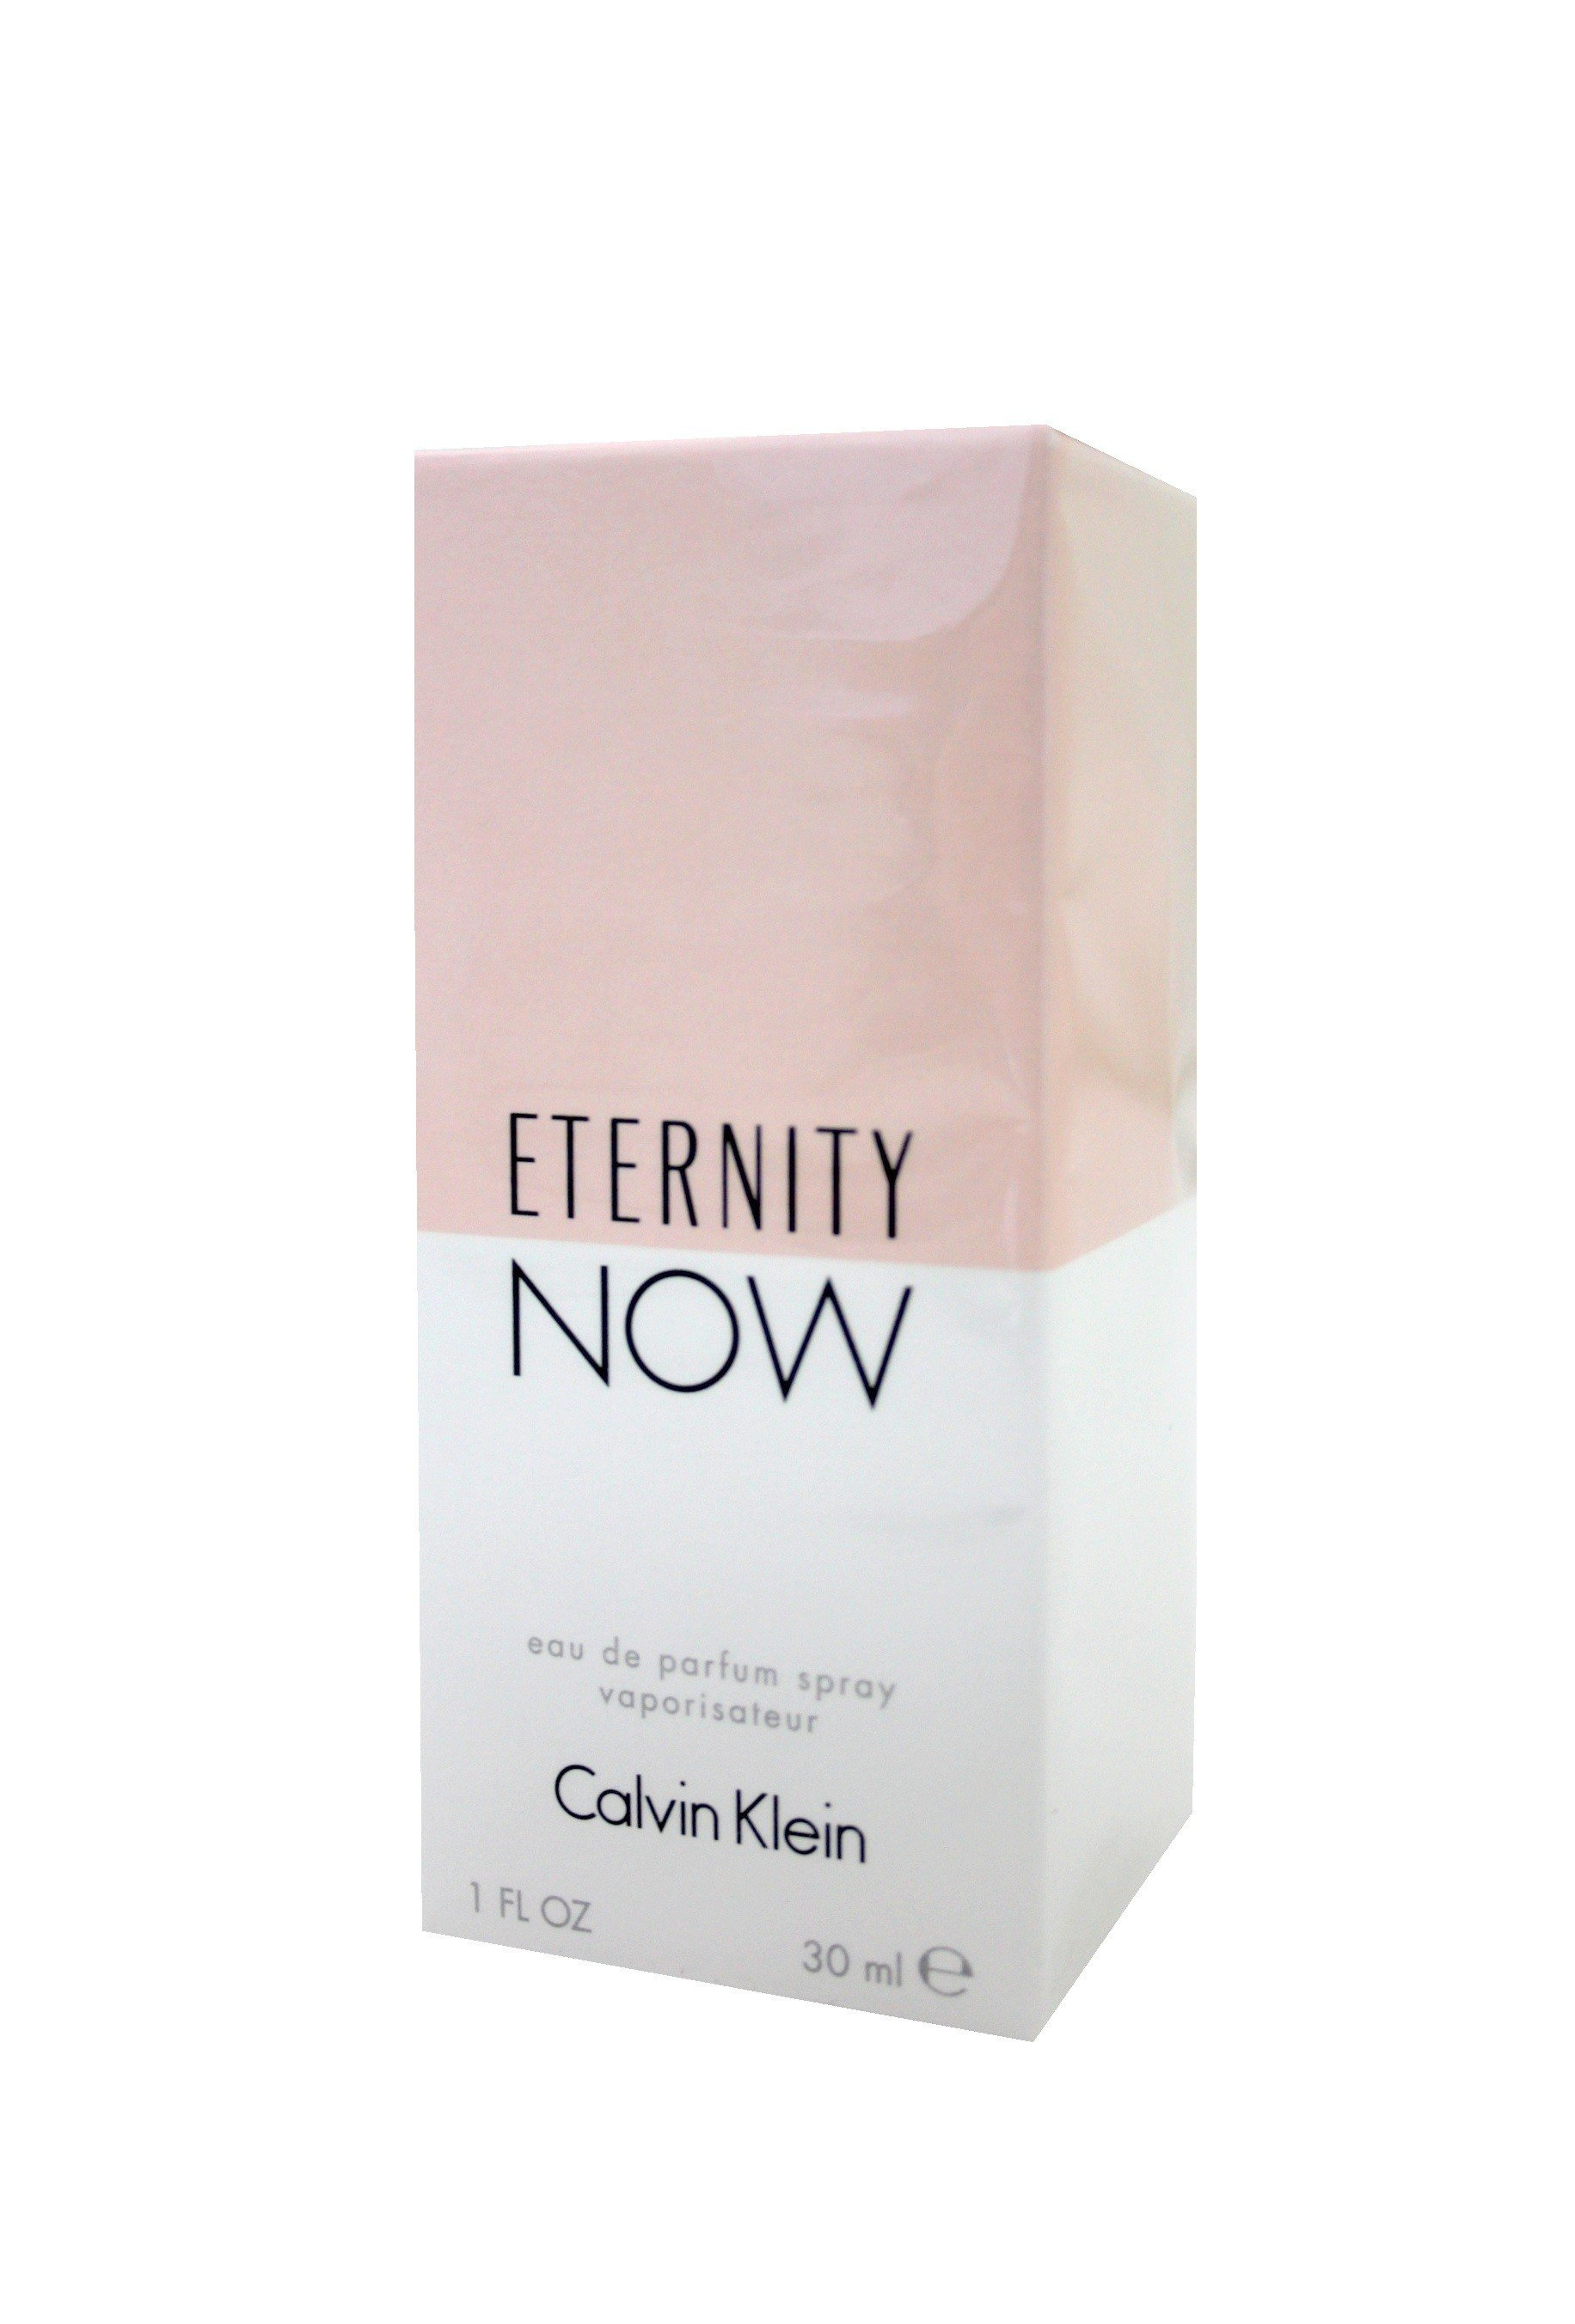 Calvin Klein Eternity Now For Women Eau de Parfum